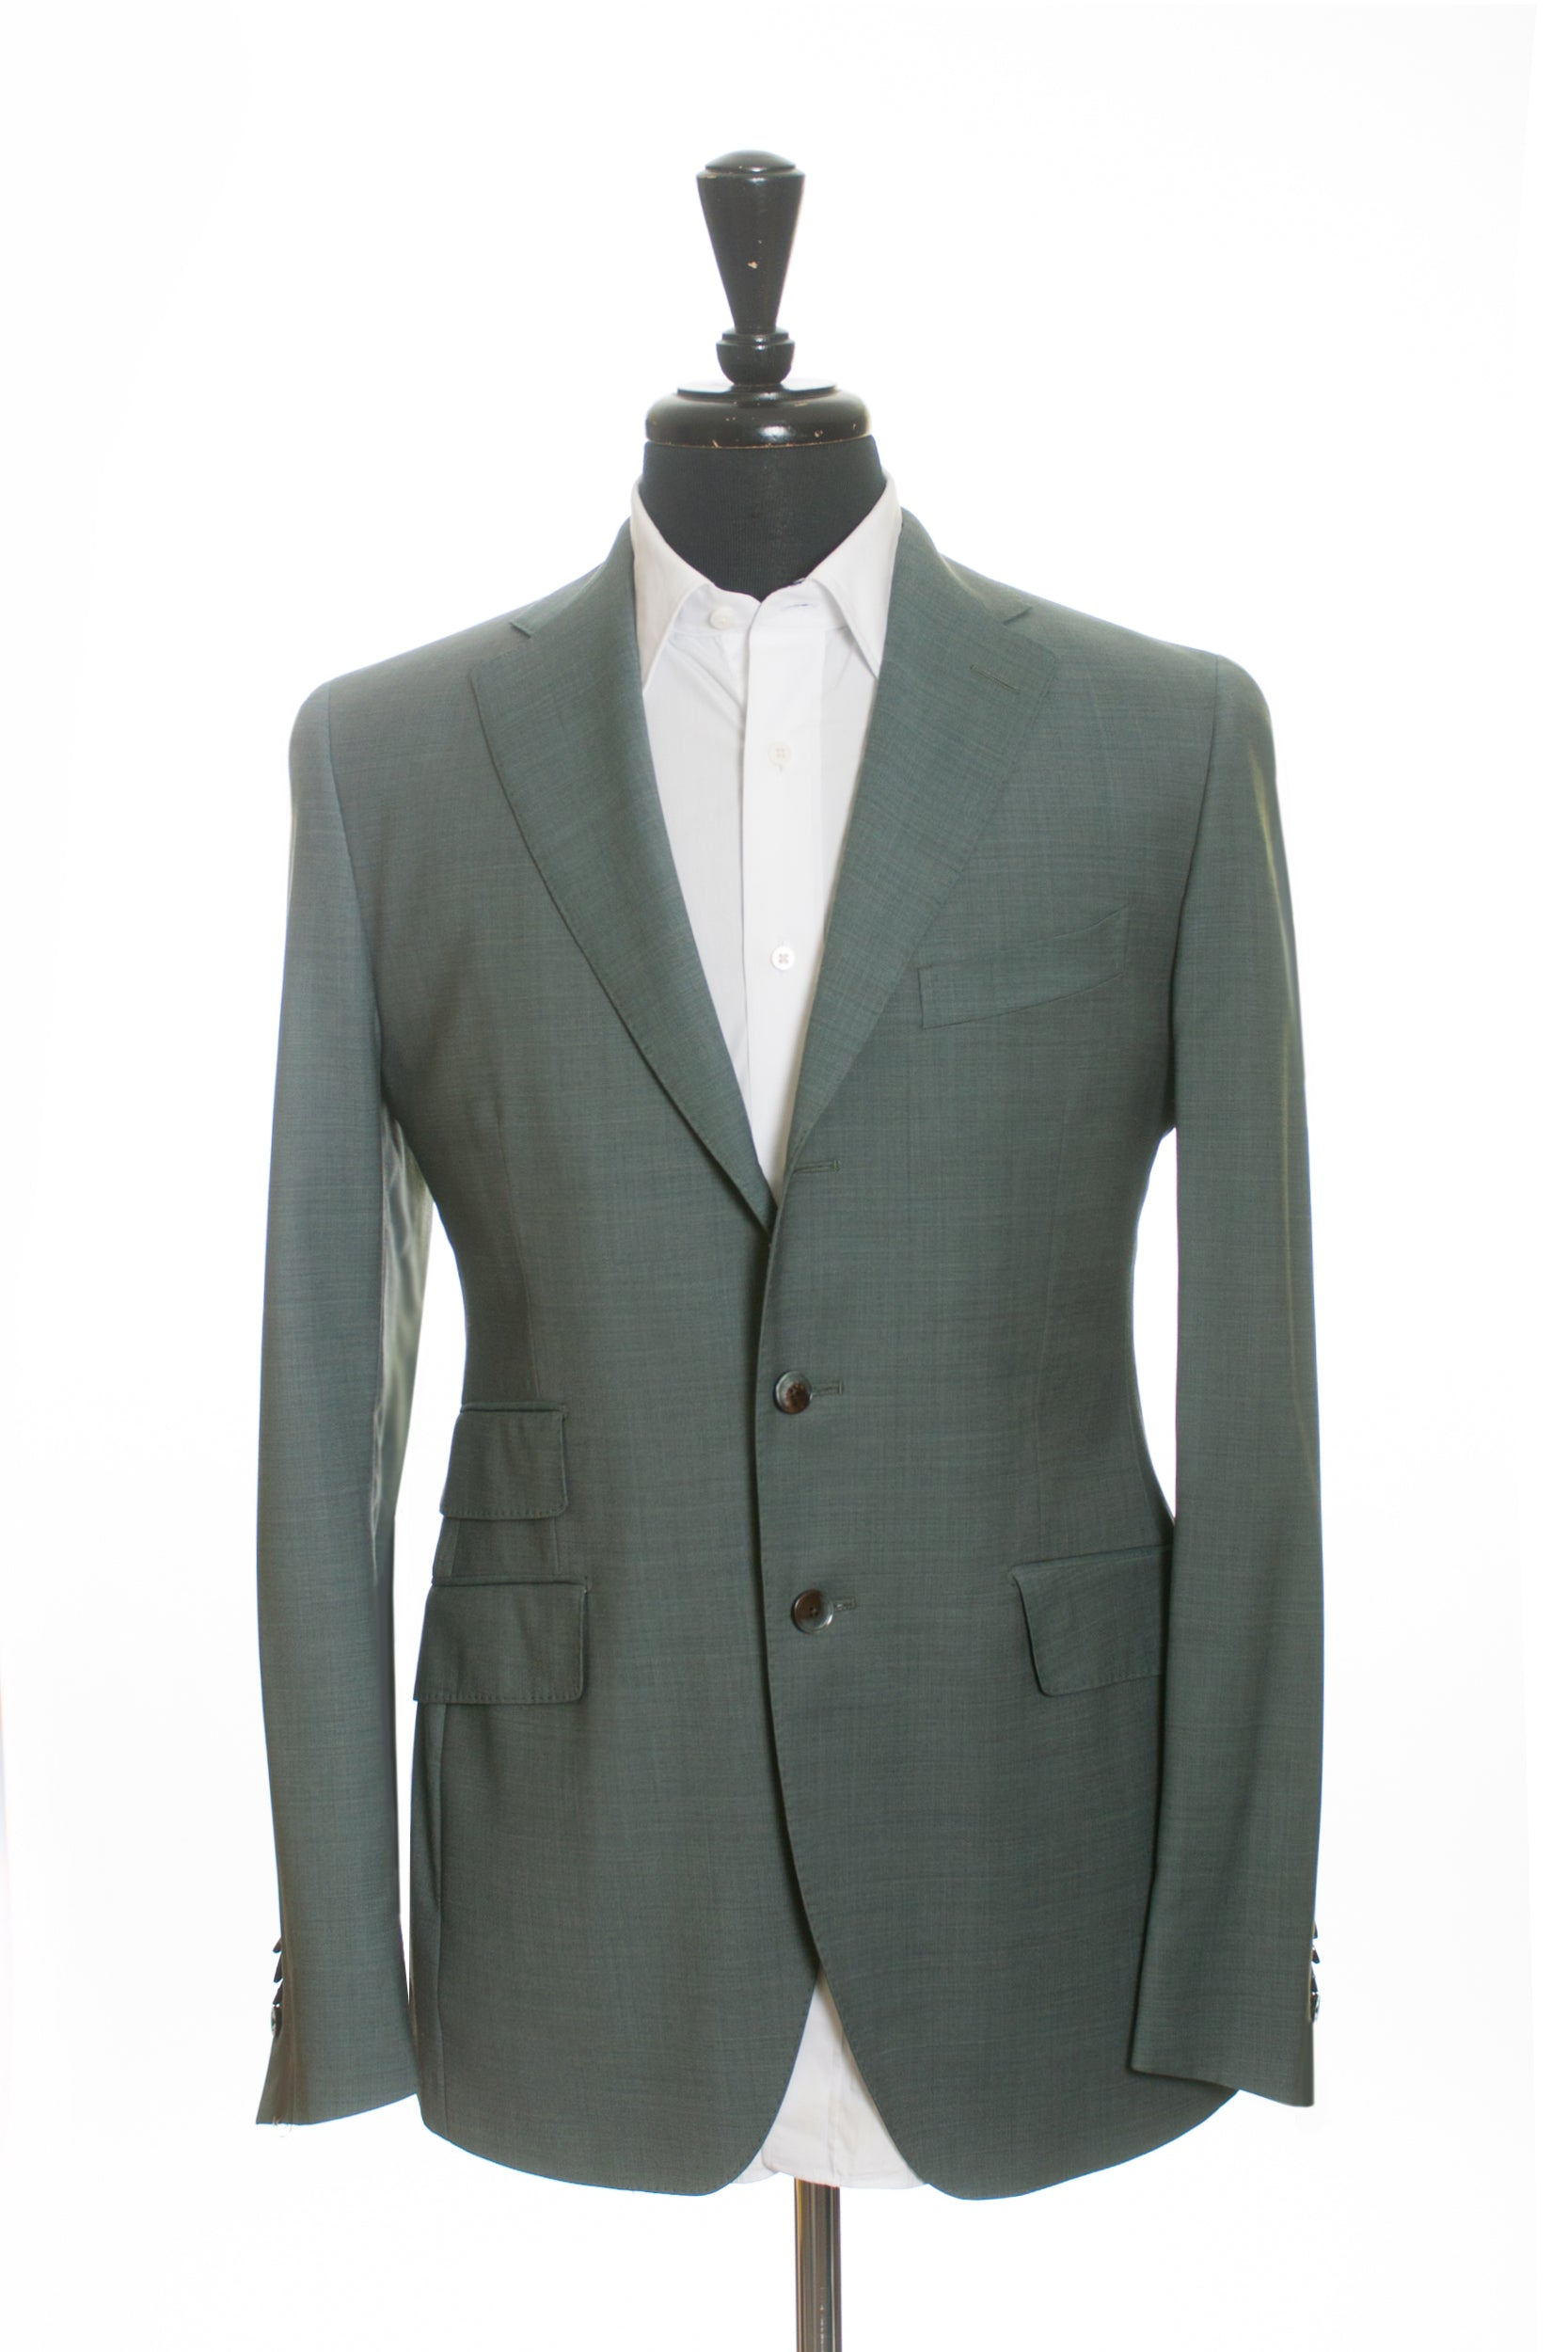 Boglioli NWT Grey York Suit 40R